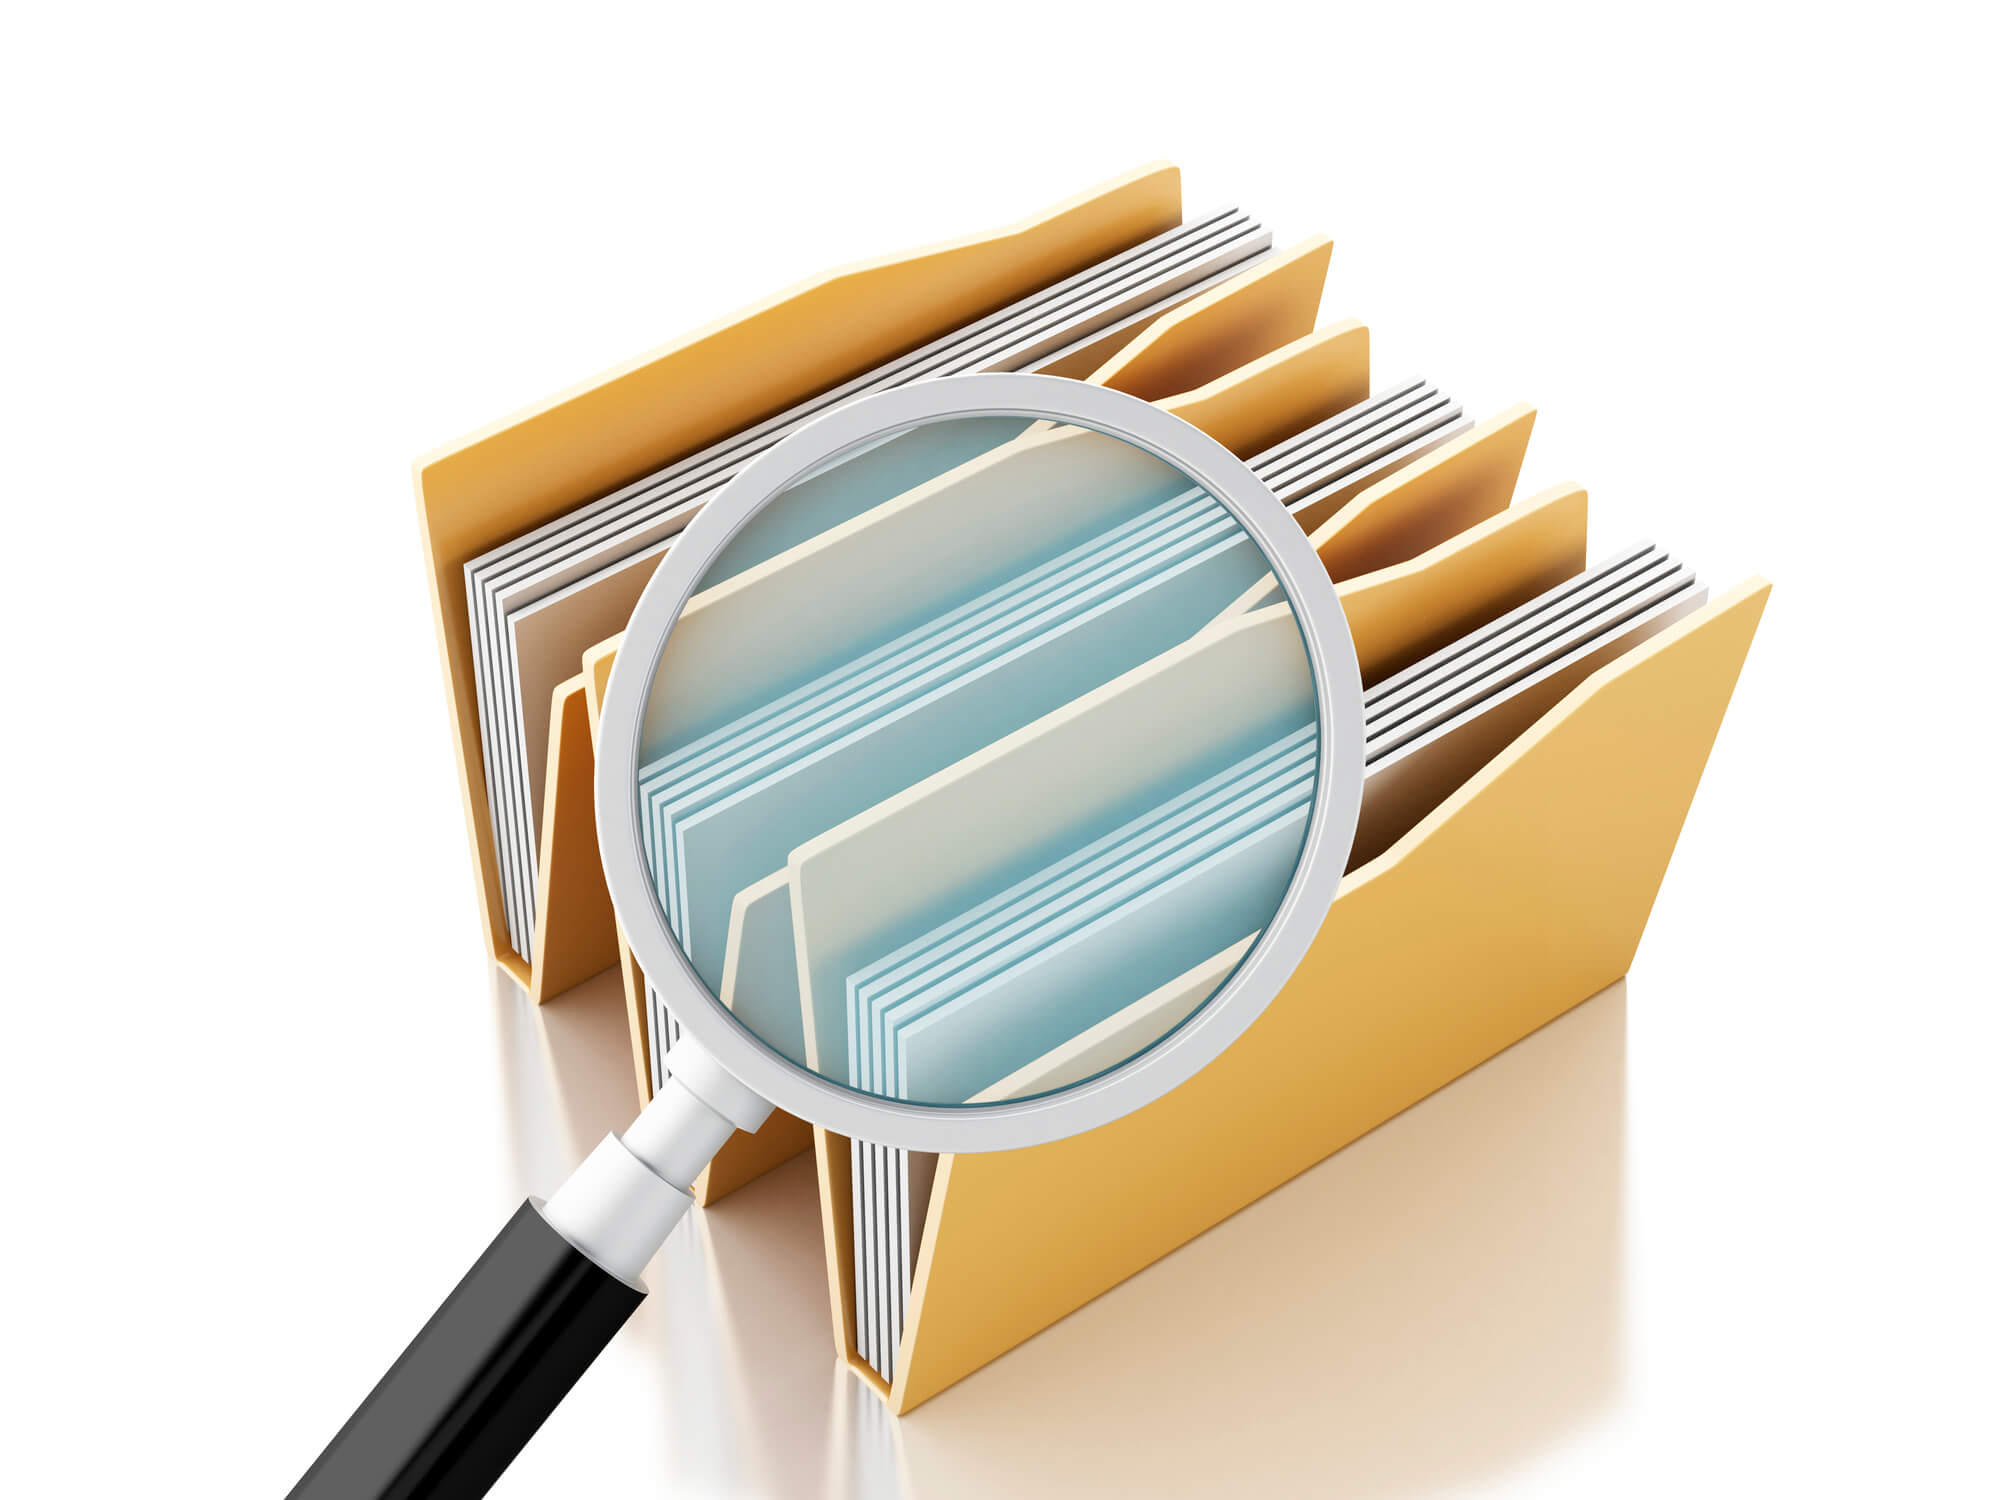 Image: magnifying glass and files in folders